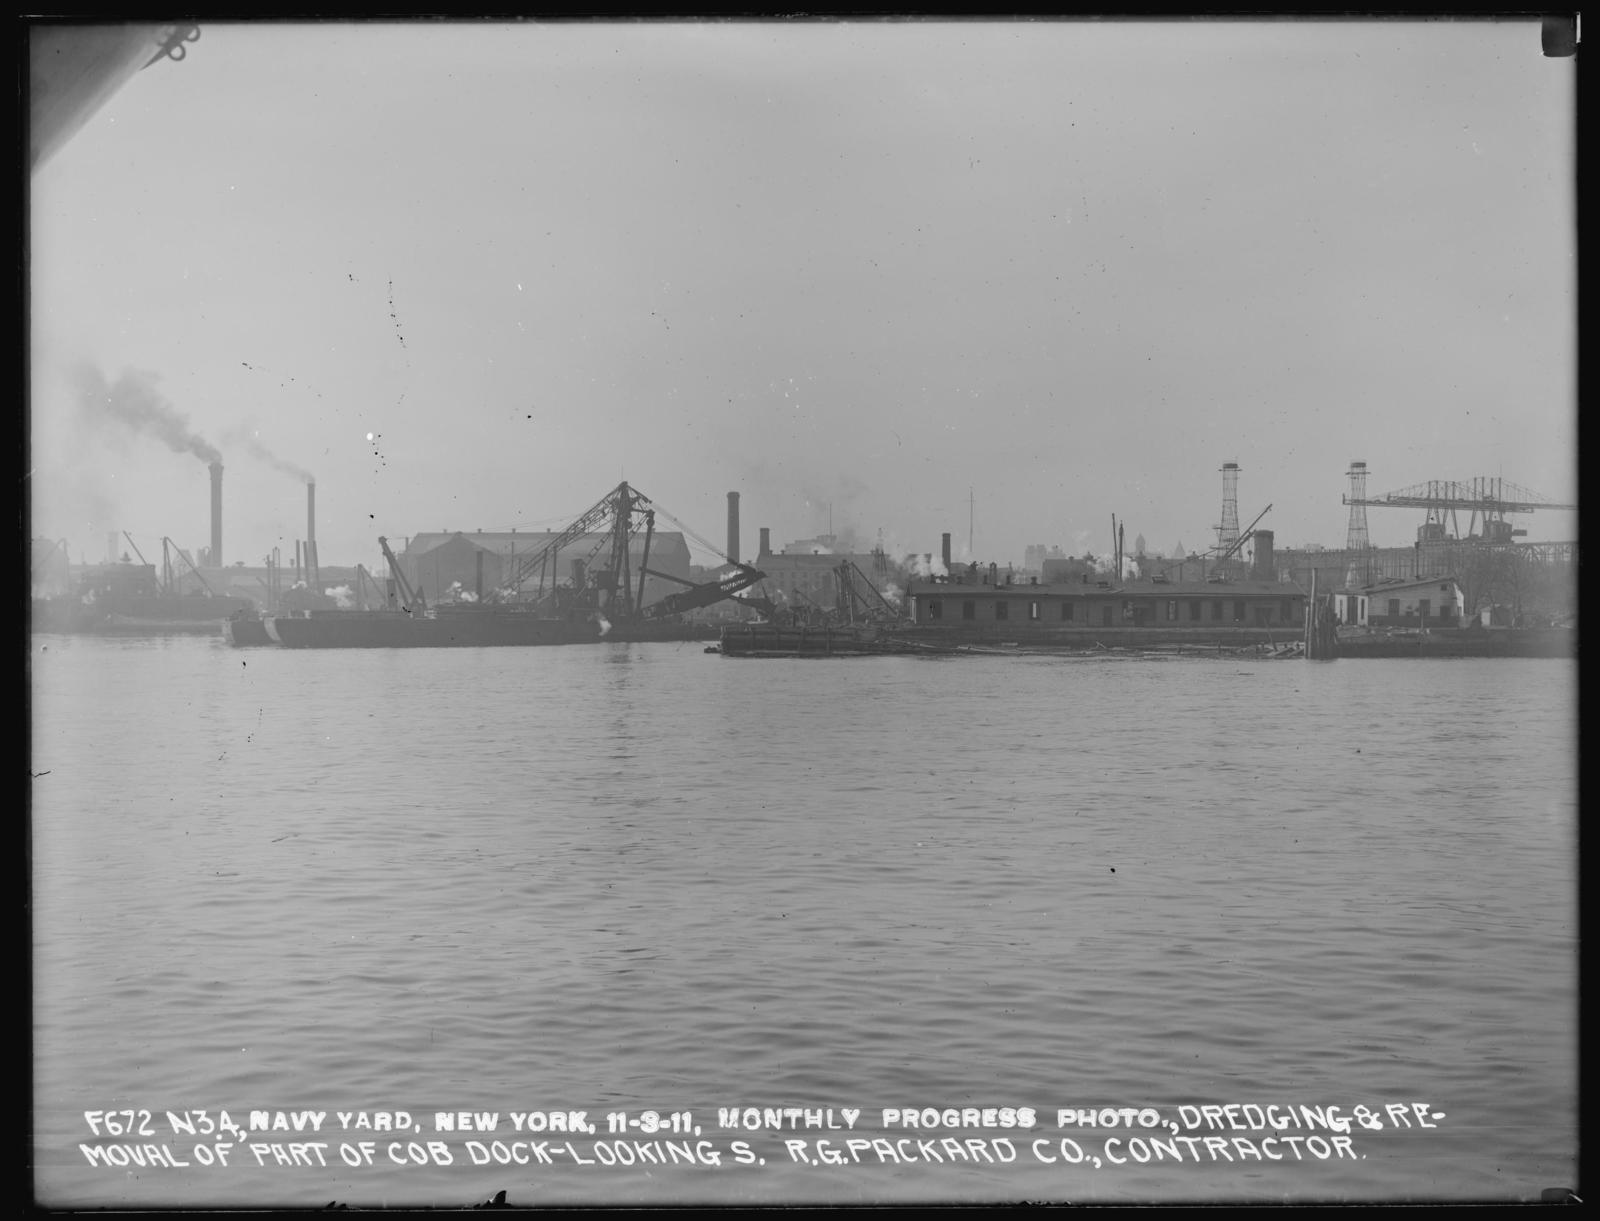 Monthly Progress Photo, Dredging and Removal of Part of Cob Dock, Looking South, R. G. Packard Company, Contractor